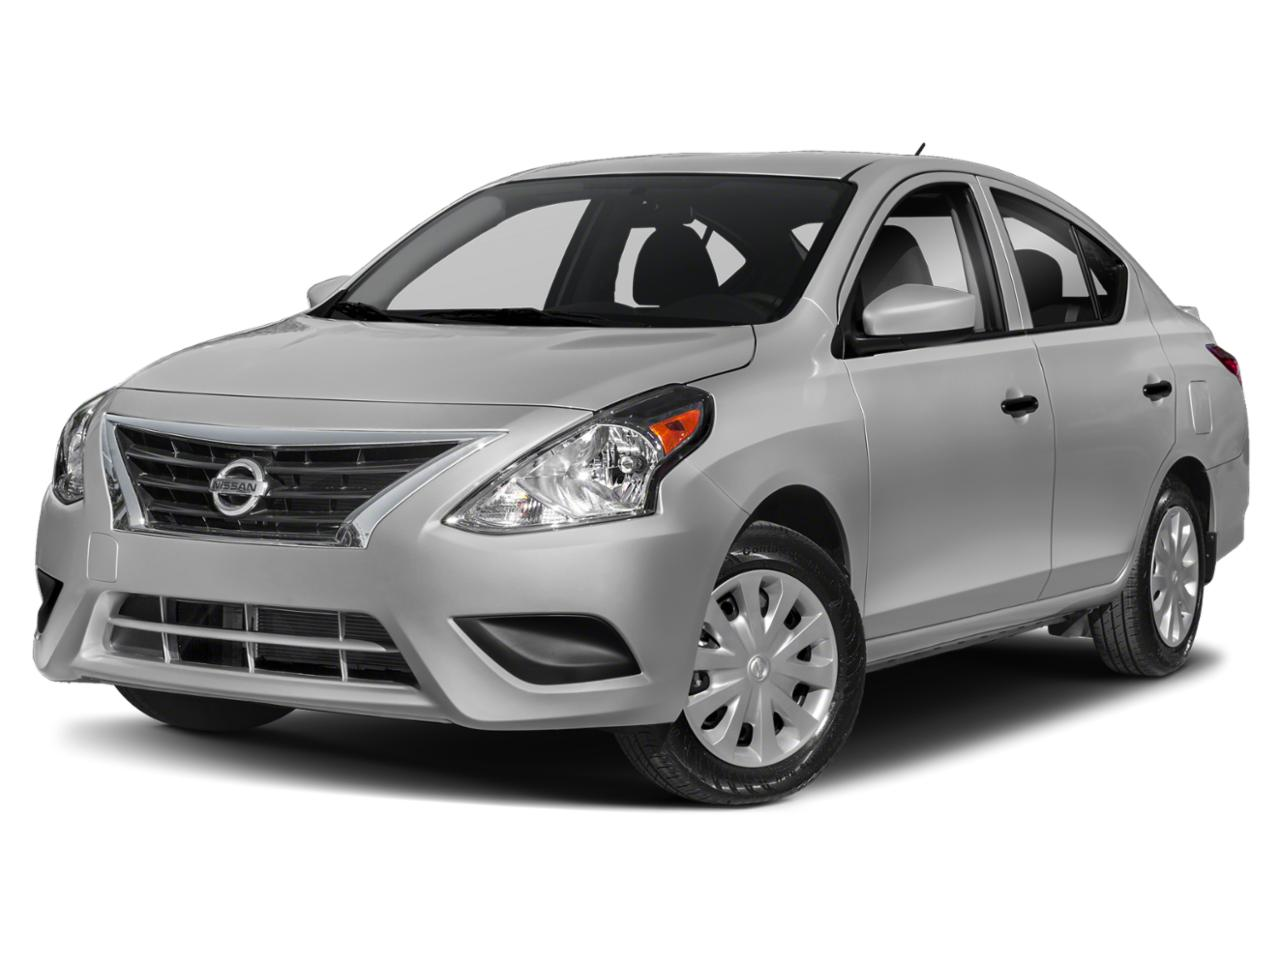 2019 Nissan Versa Sedan Vehicle Photo in Joliet, IL 60435